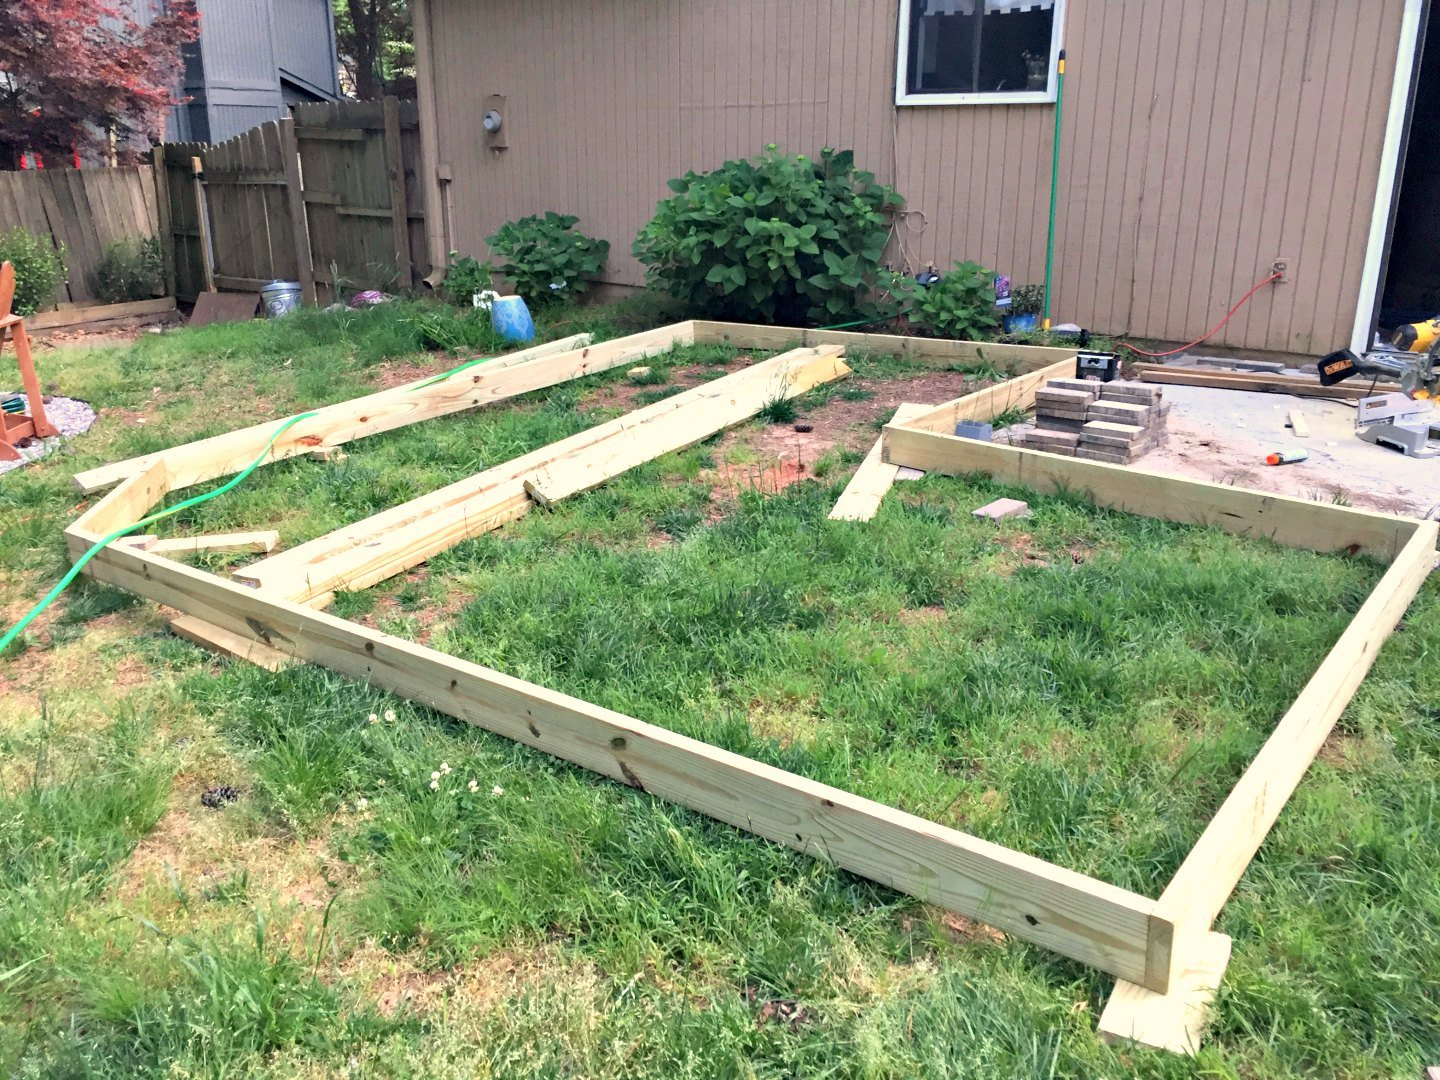 Diy floating deck part 2 frame waterproofing ugly for How to build a floating house